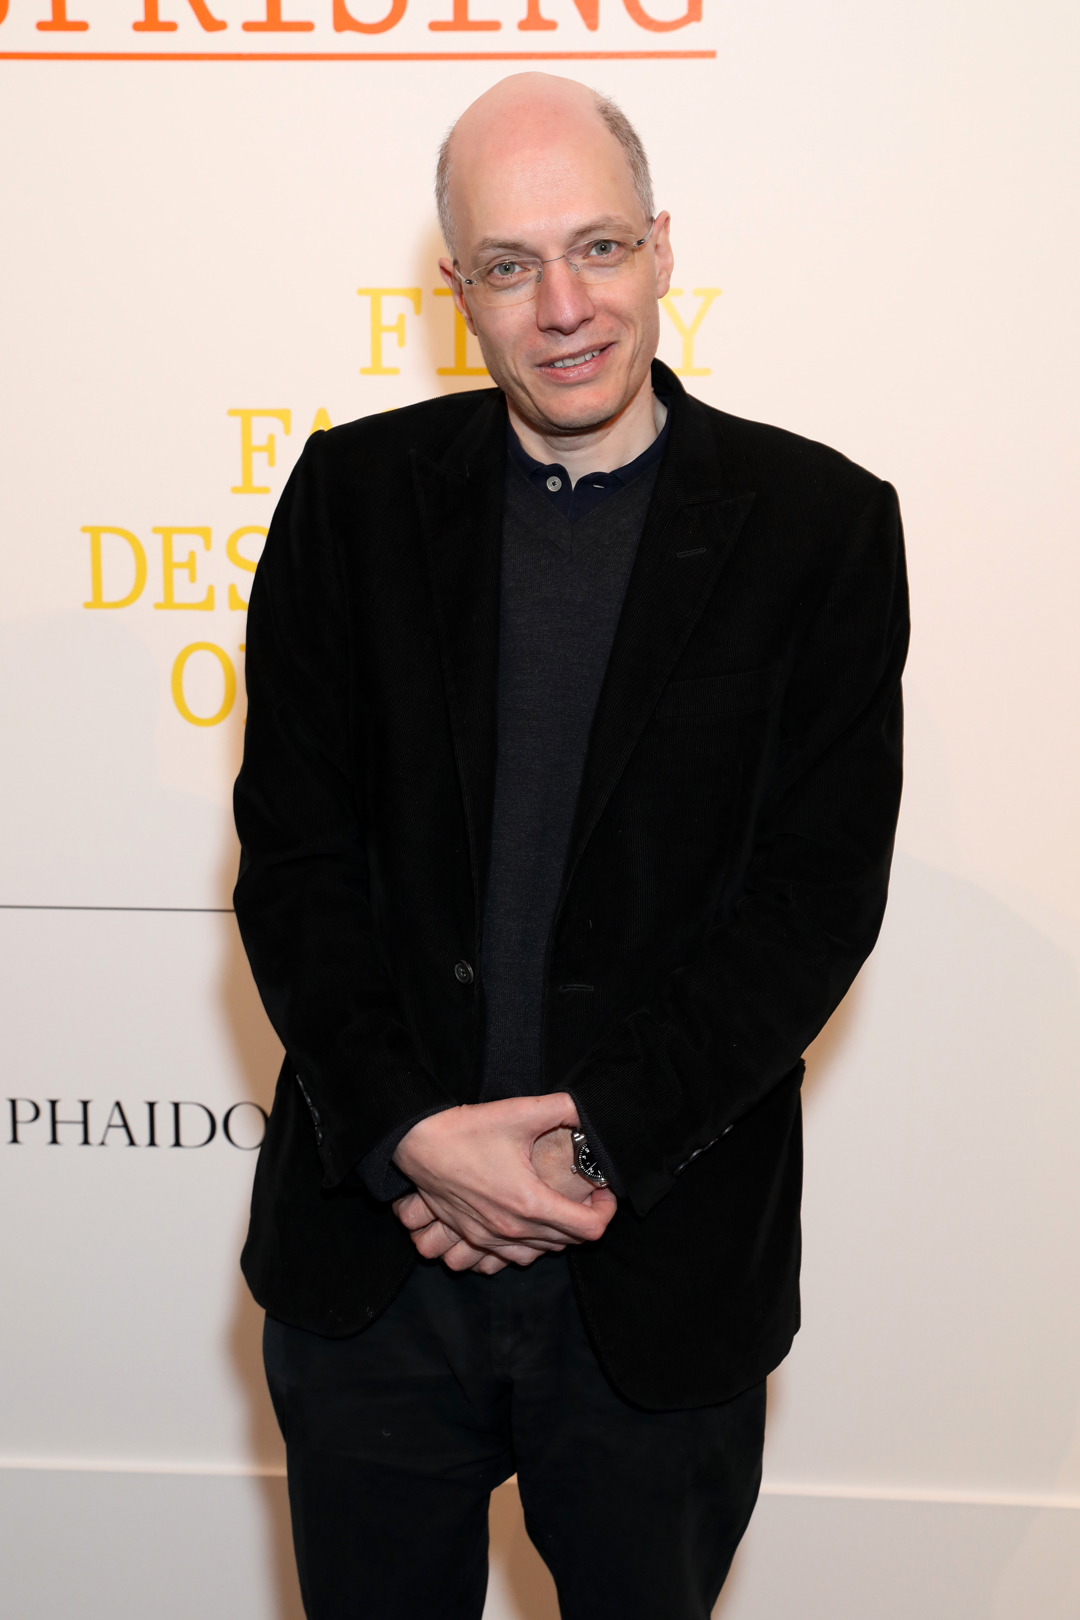 Alain de Botton at Sotheby's last night